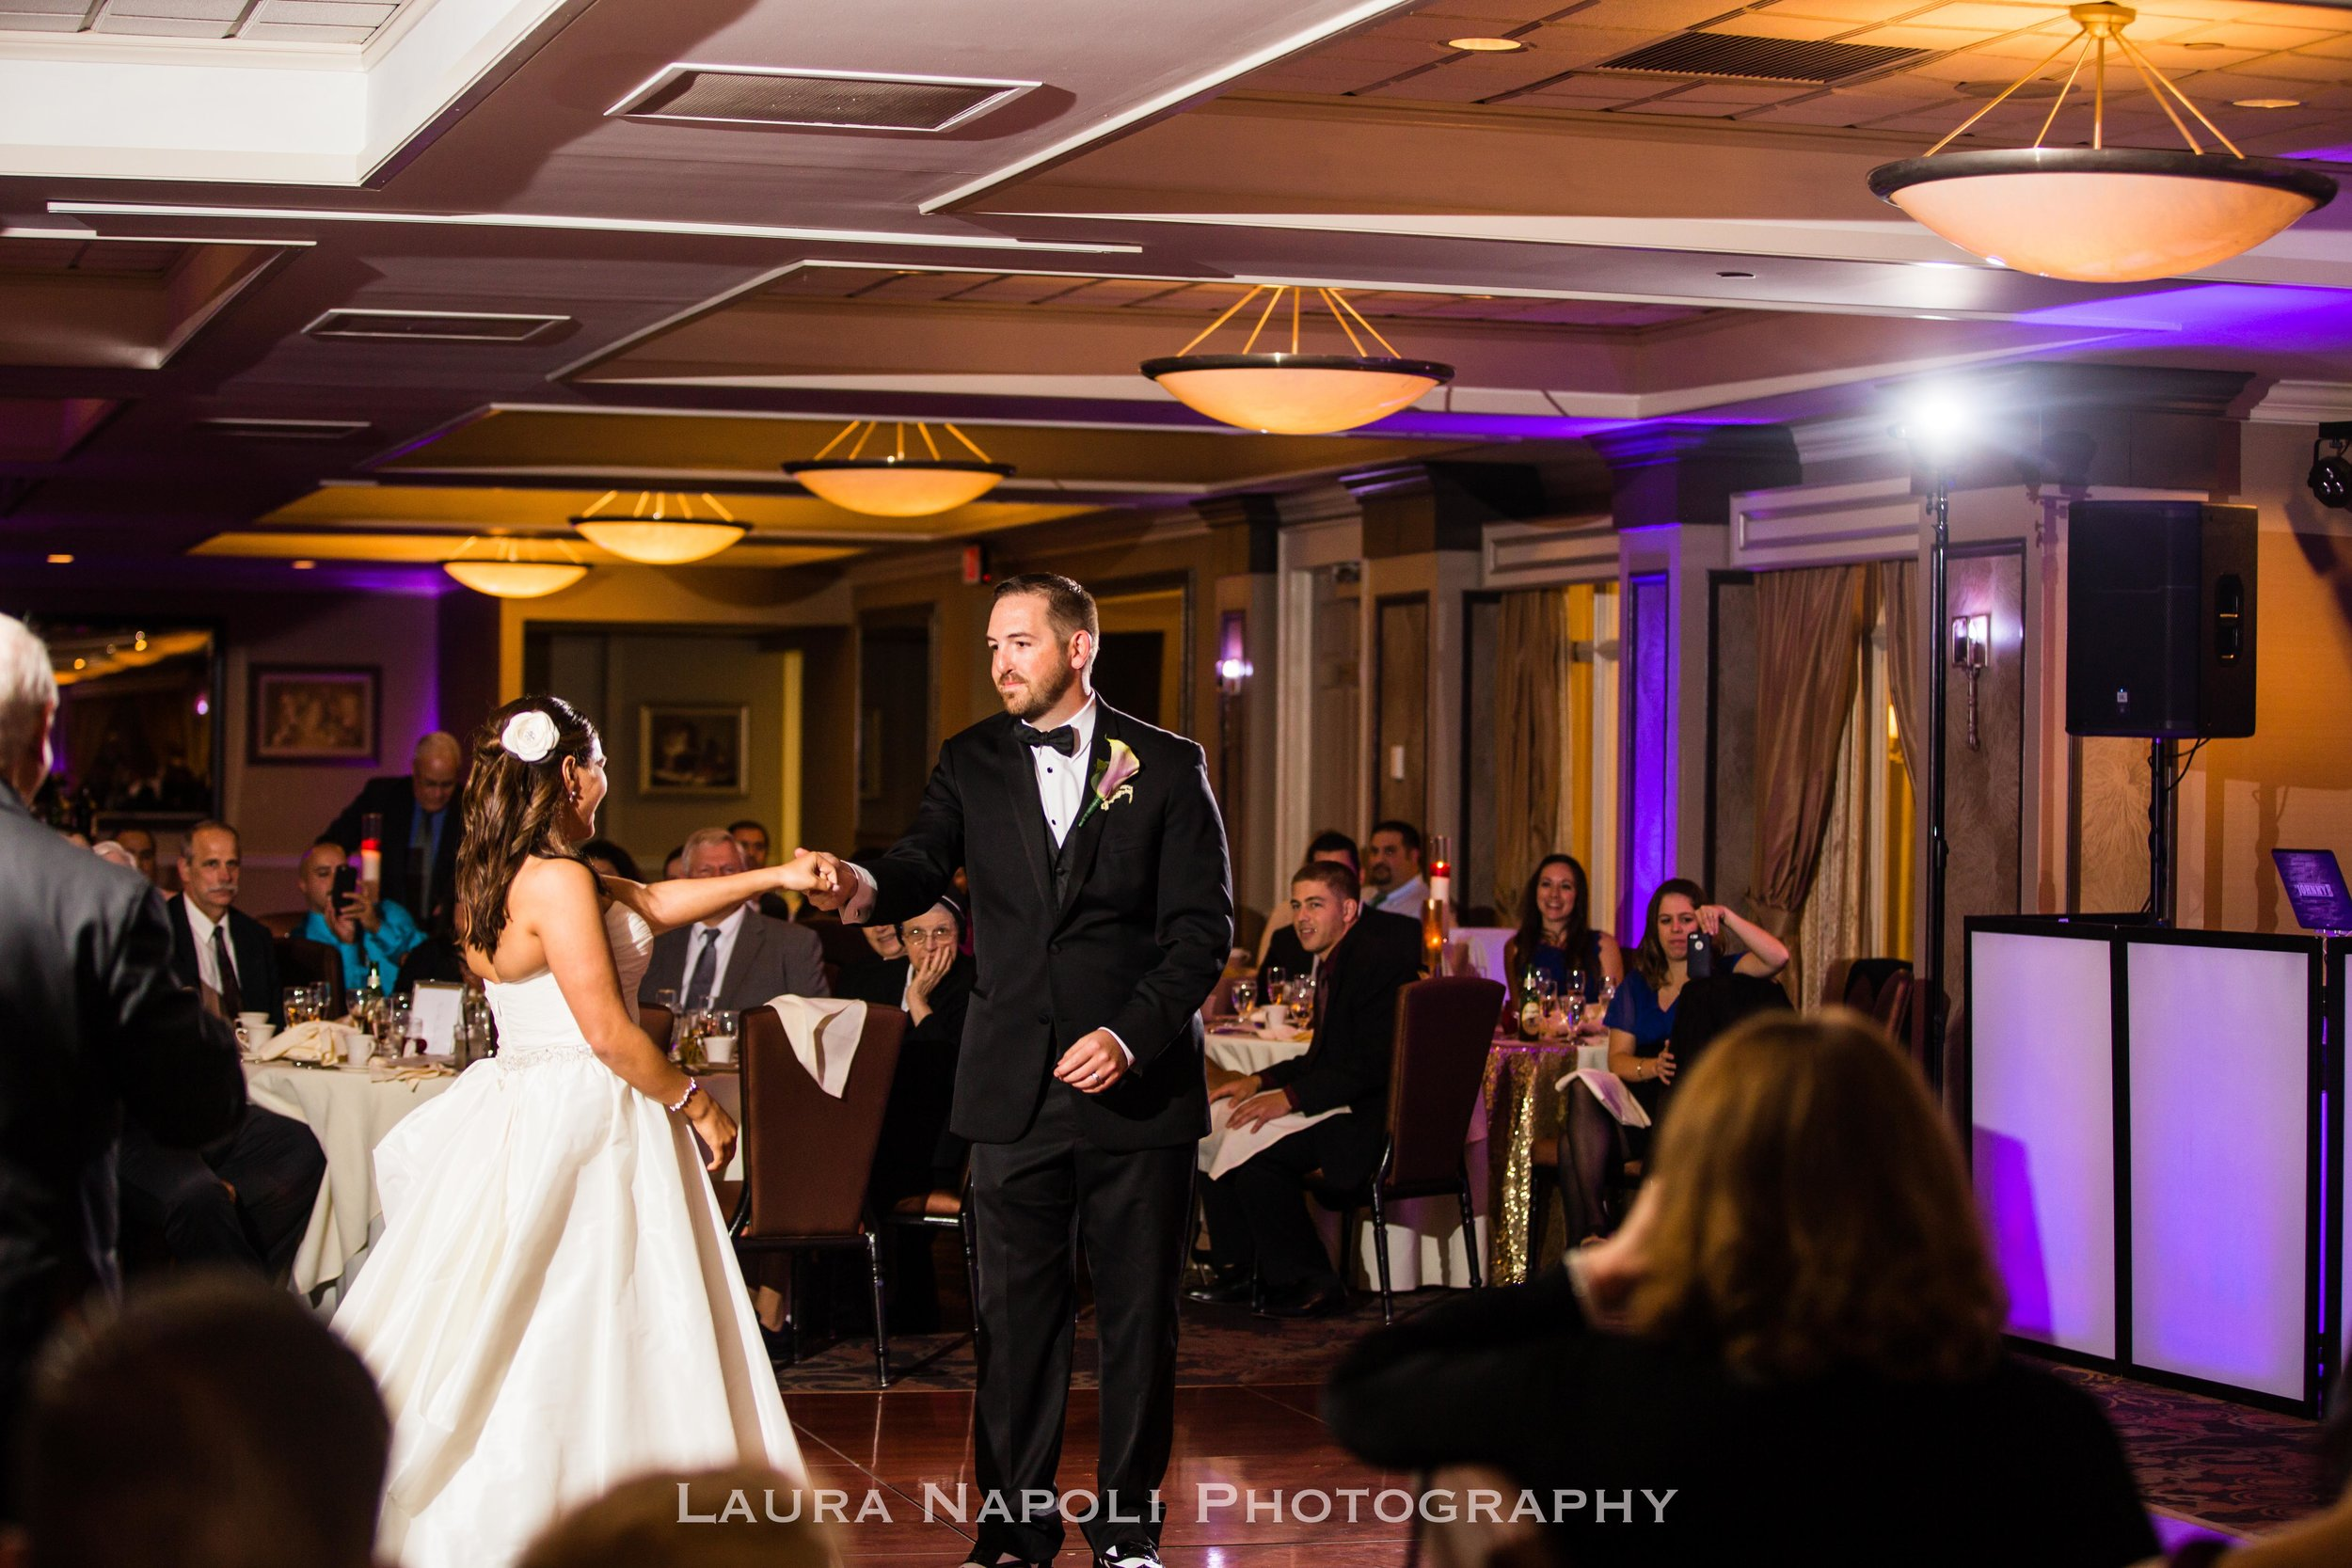 ScotlandRunWilliamstownNJWeddingvenue-10.jpg